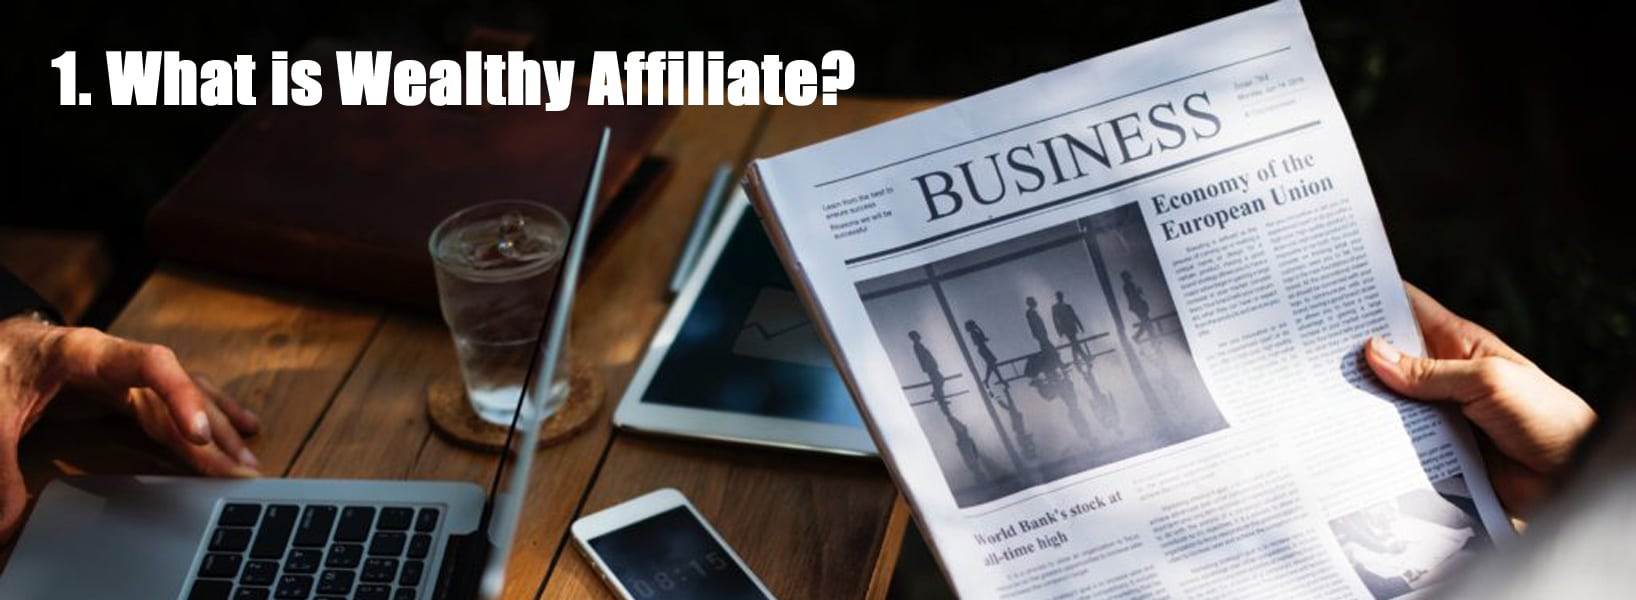 what-is-wealthy-affiliate